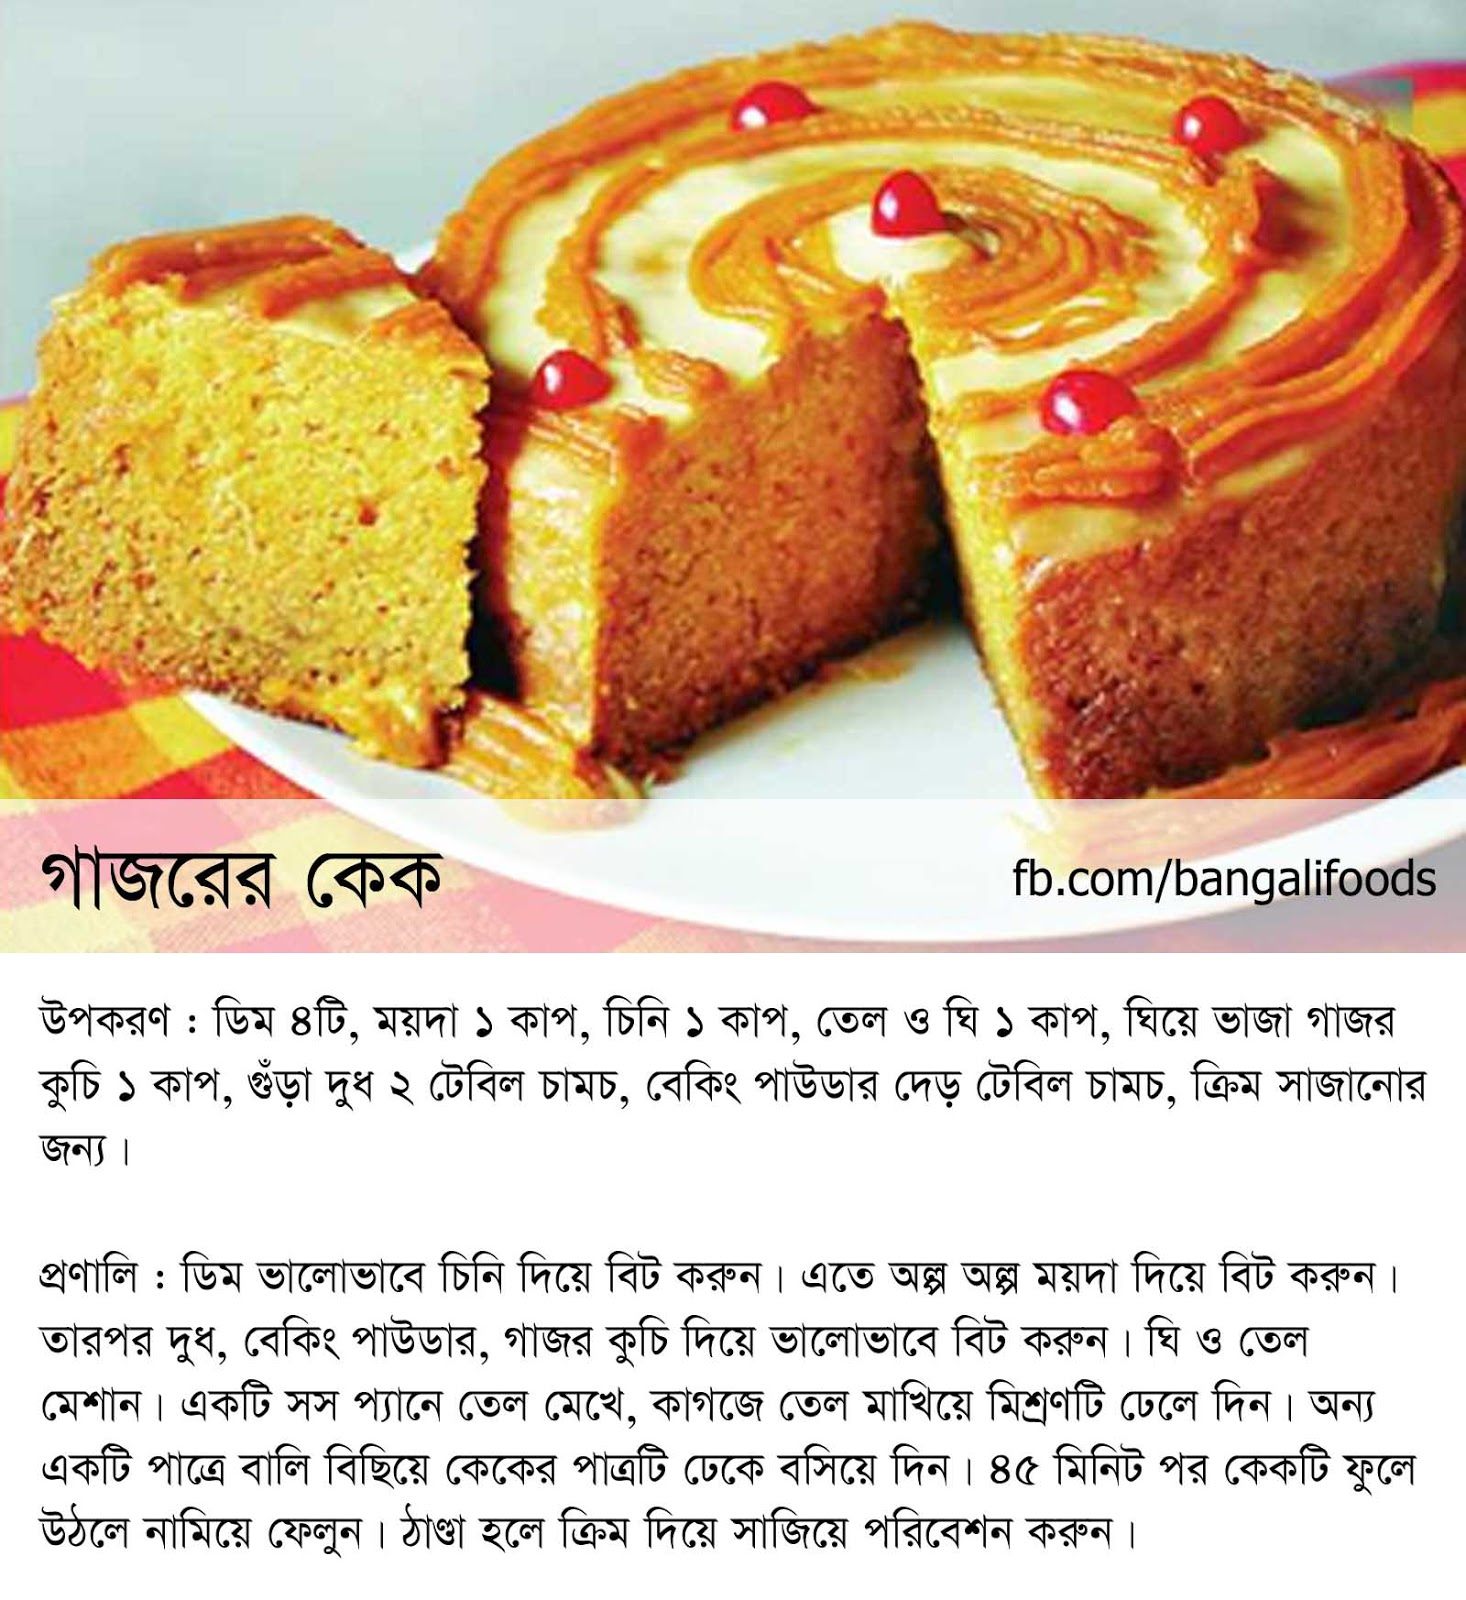 Cake recipes bengali language cake recipe bangali foods carrot item food recipe forumfinder Image collections